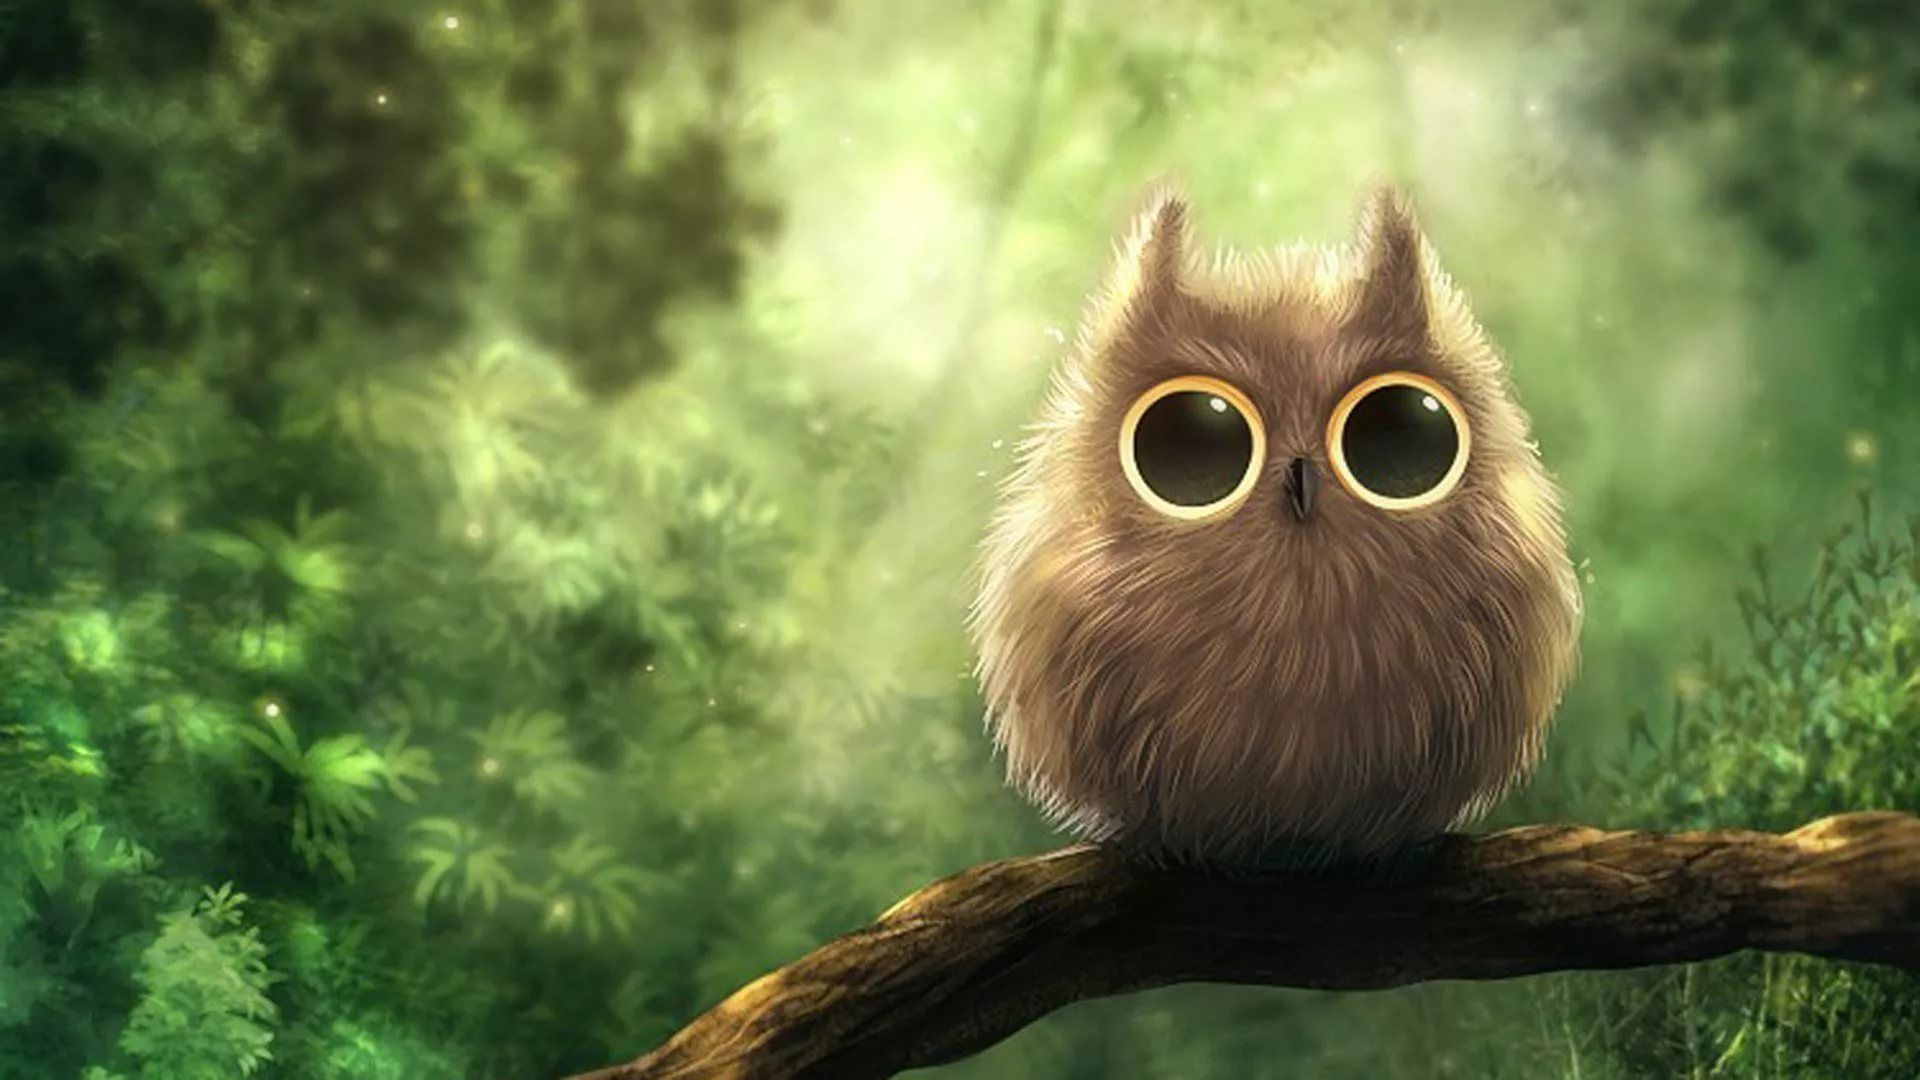 cute wallpapers free download for laptop